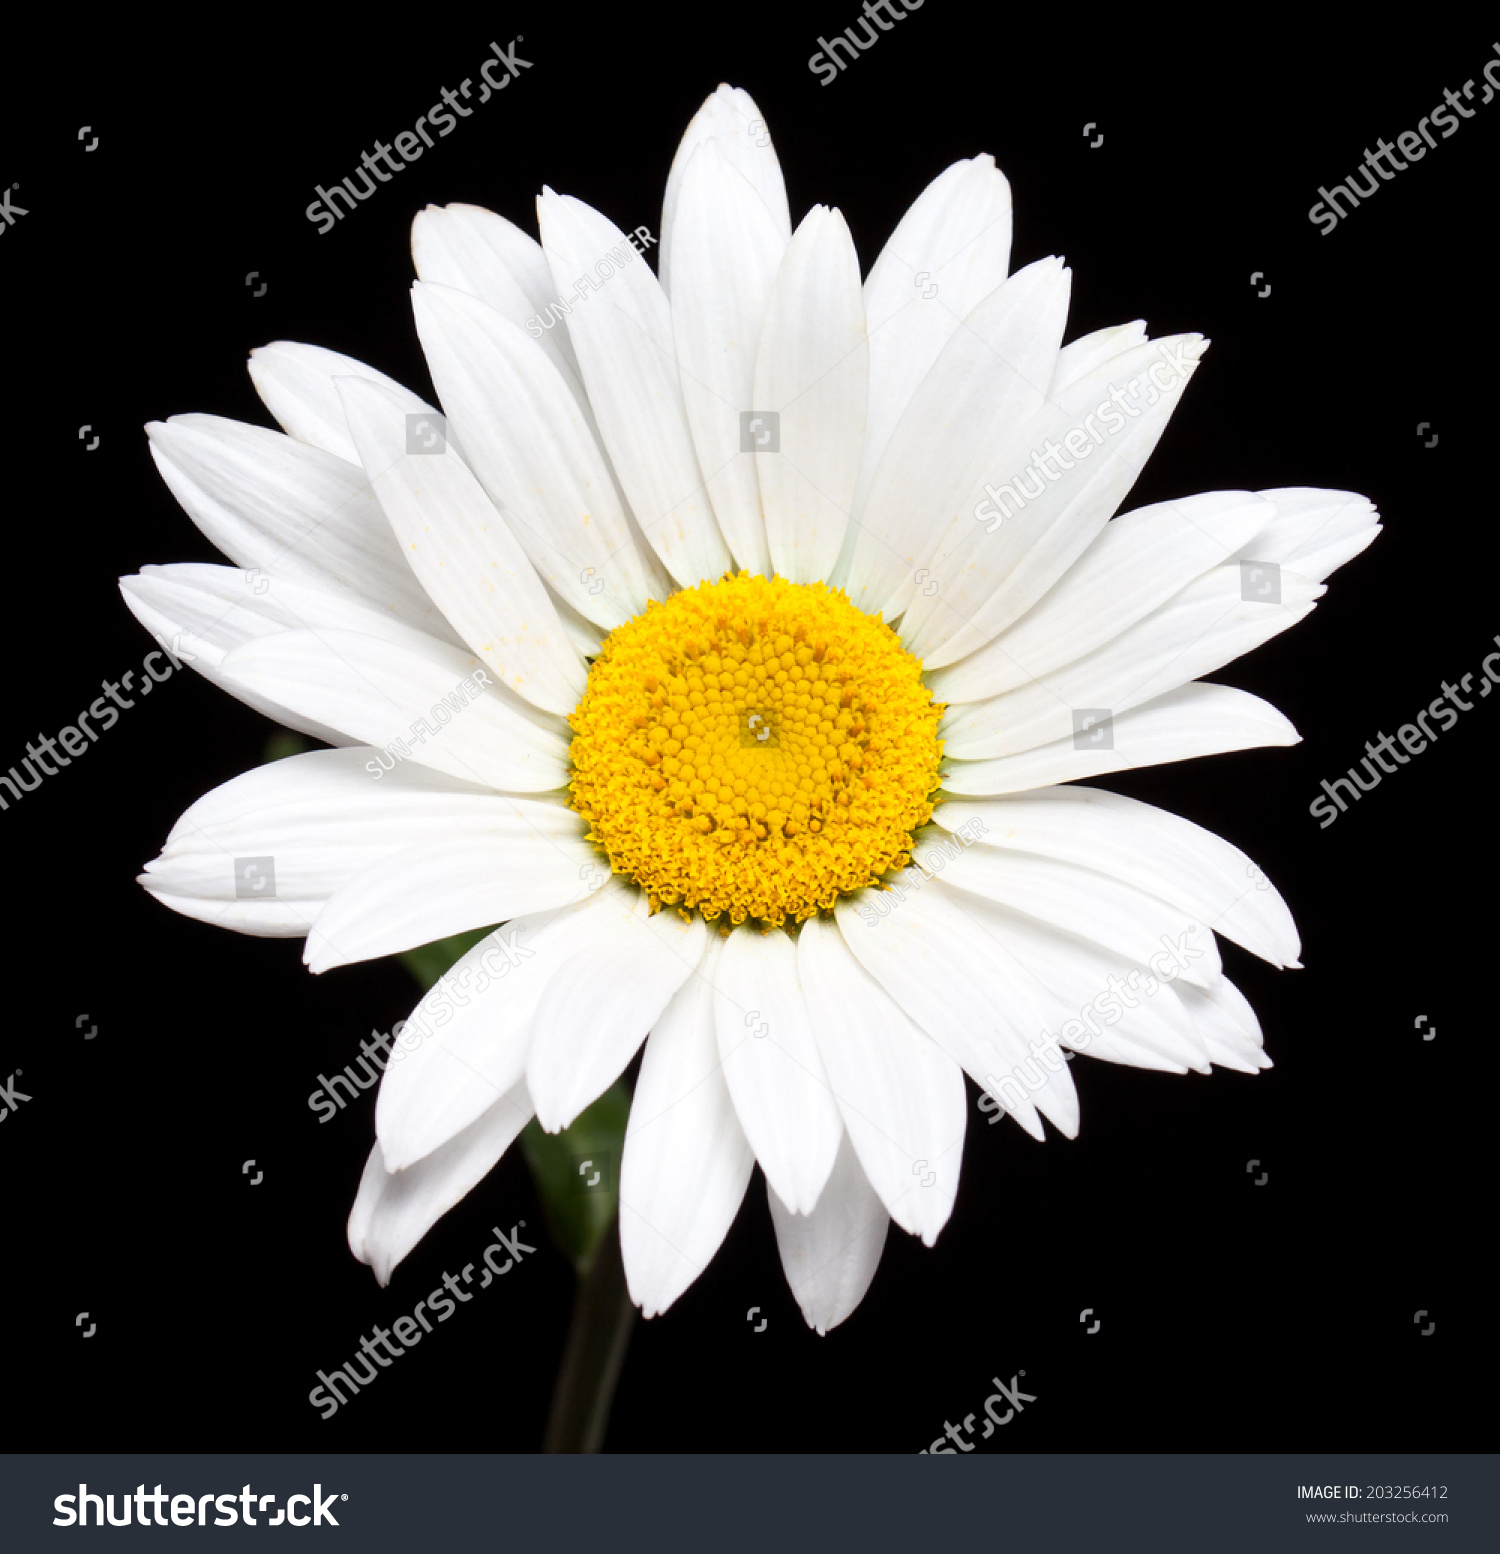 Camomile, White Daisy Flower Isolated On Black Background ...